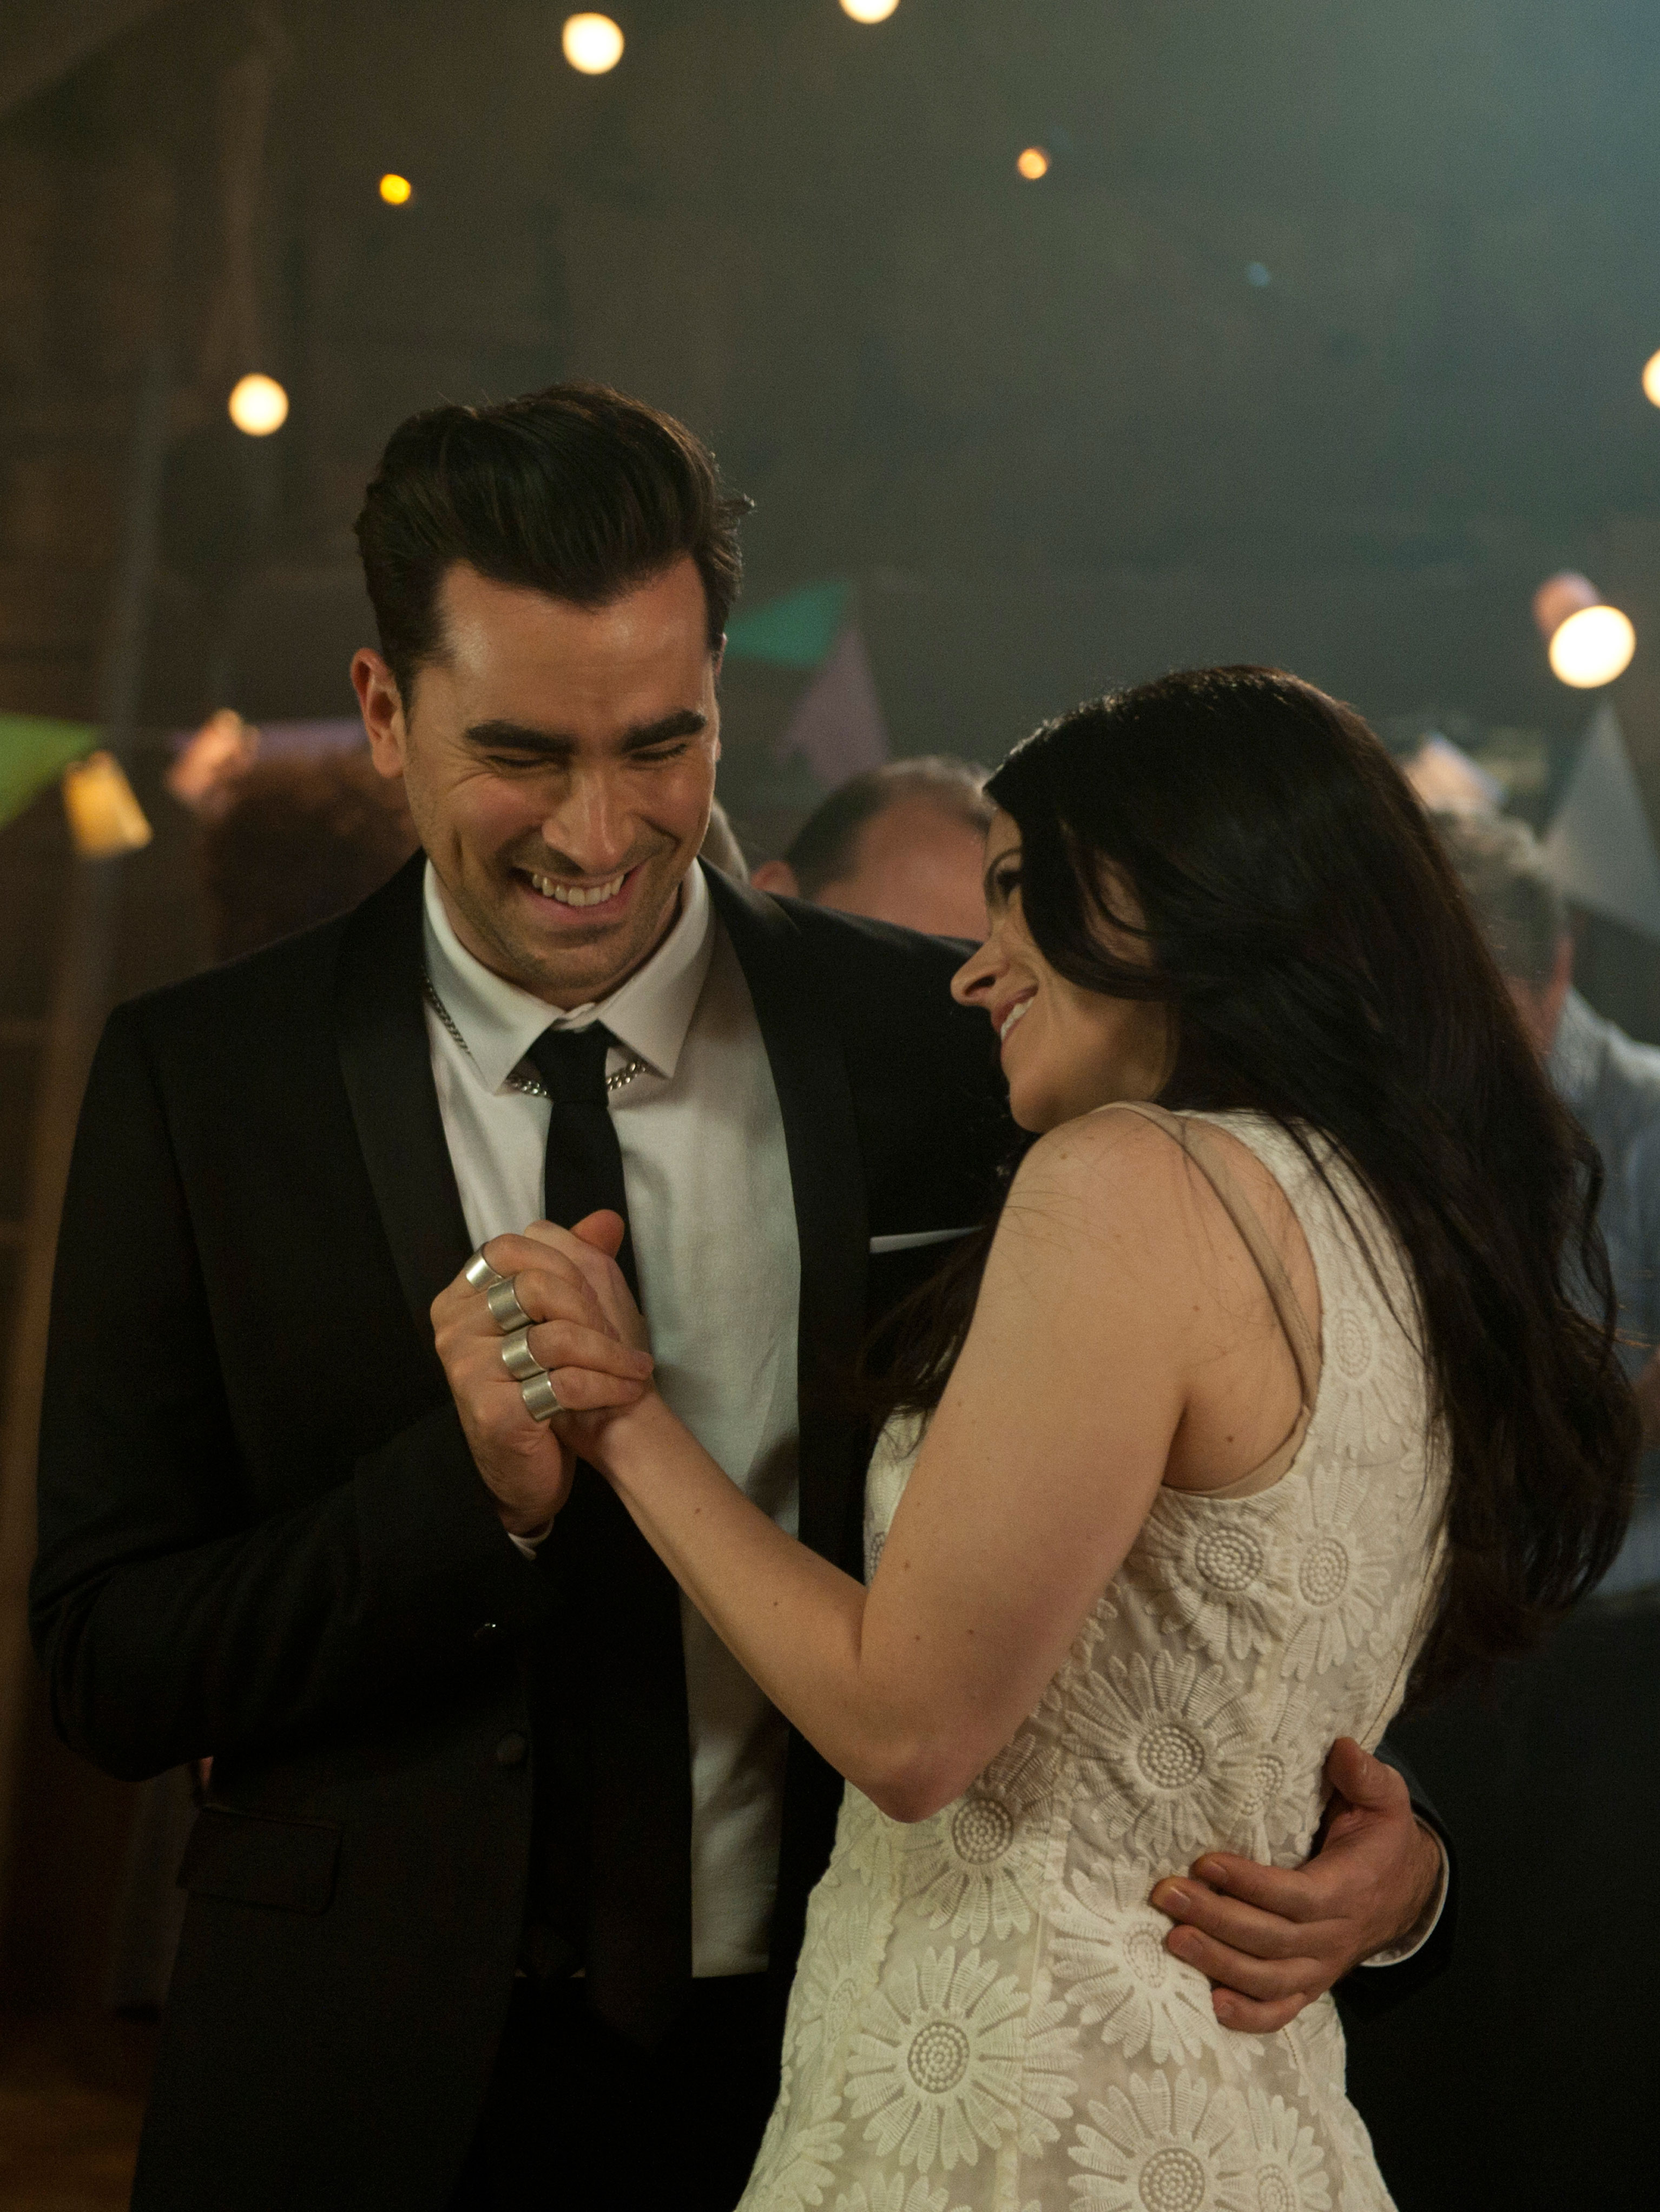 Dan Levy Talks Playing Pansexual on Schitt's Creek - Flare